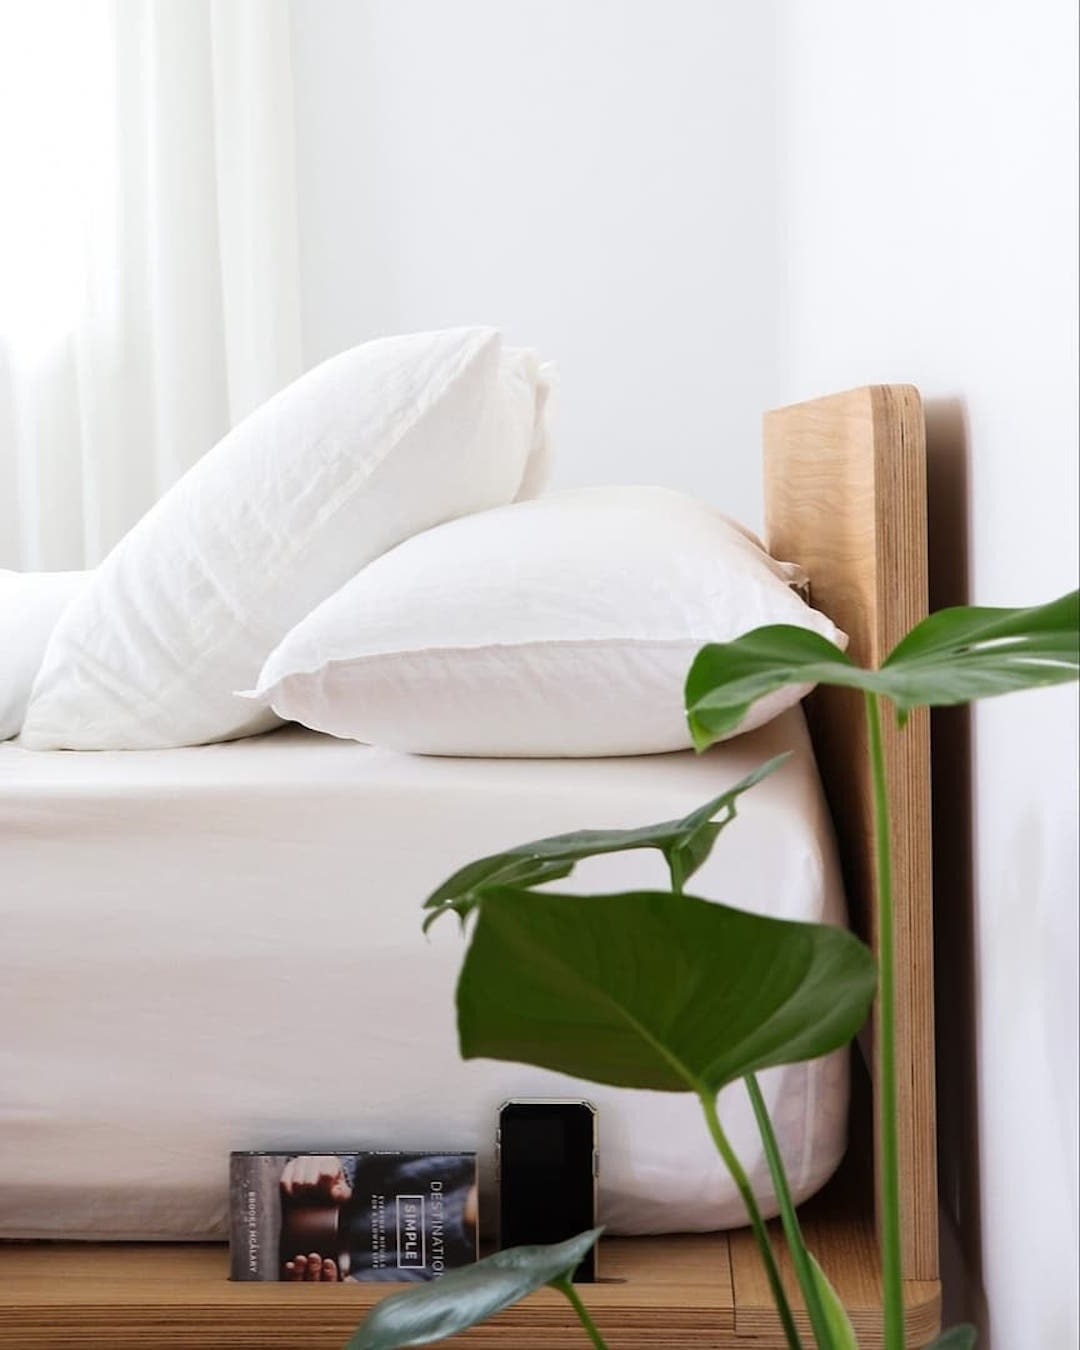 Two plush white pillows rest on a cloud-like bed.